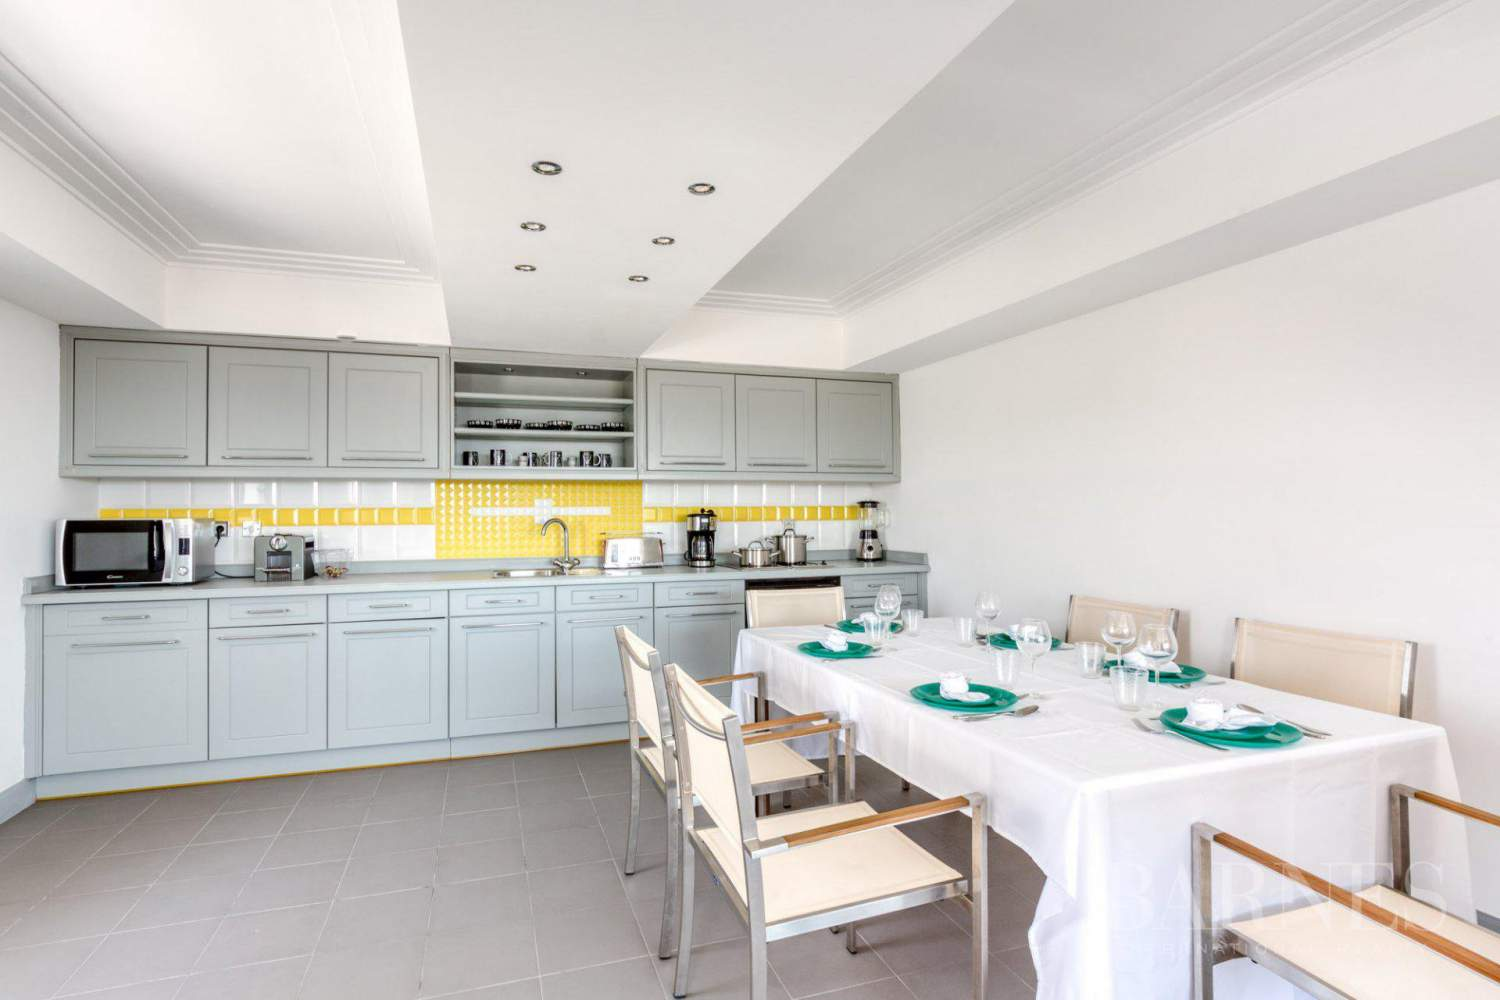 Antibes  - Villa  6 Chambres - picture 17